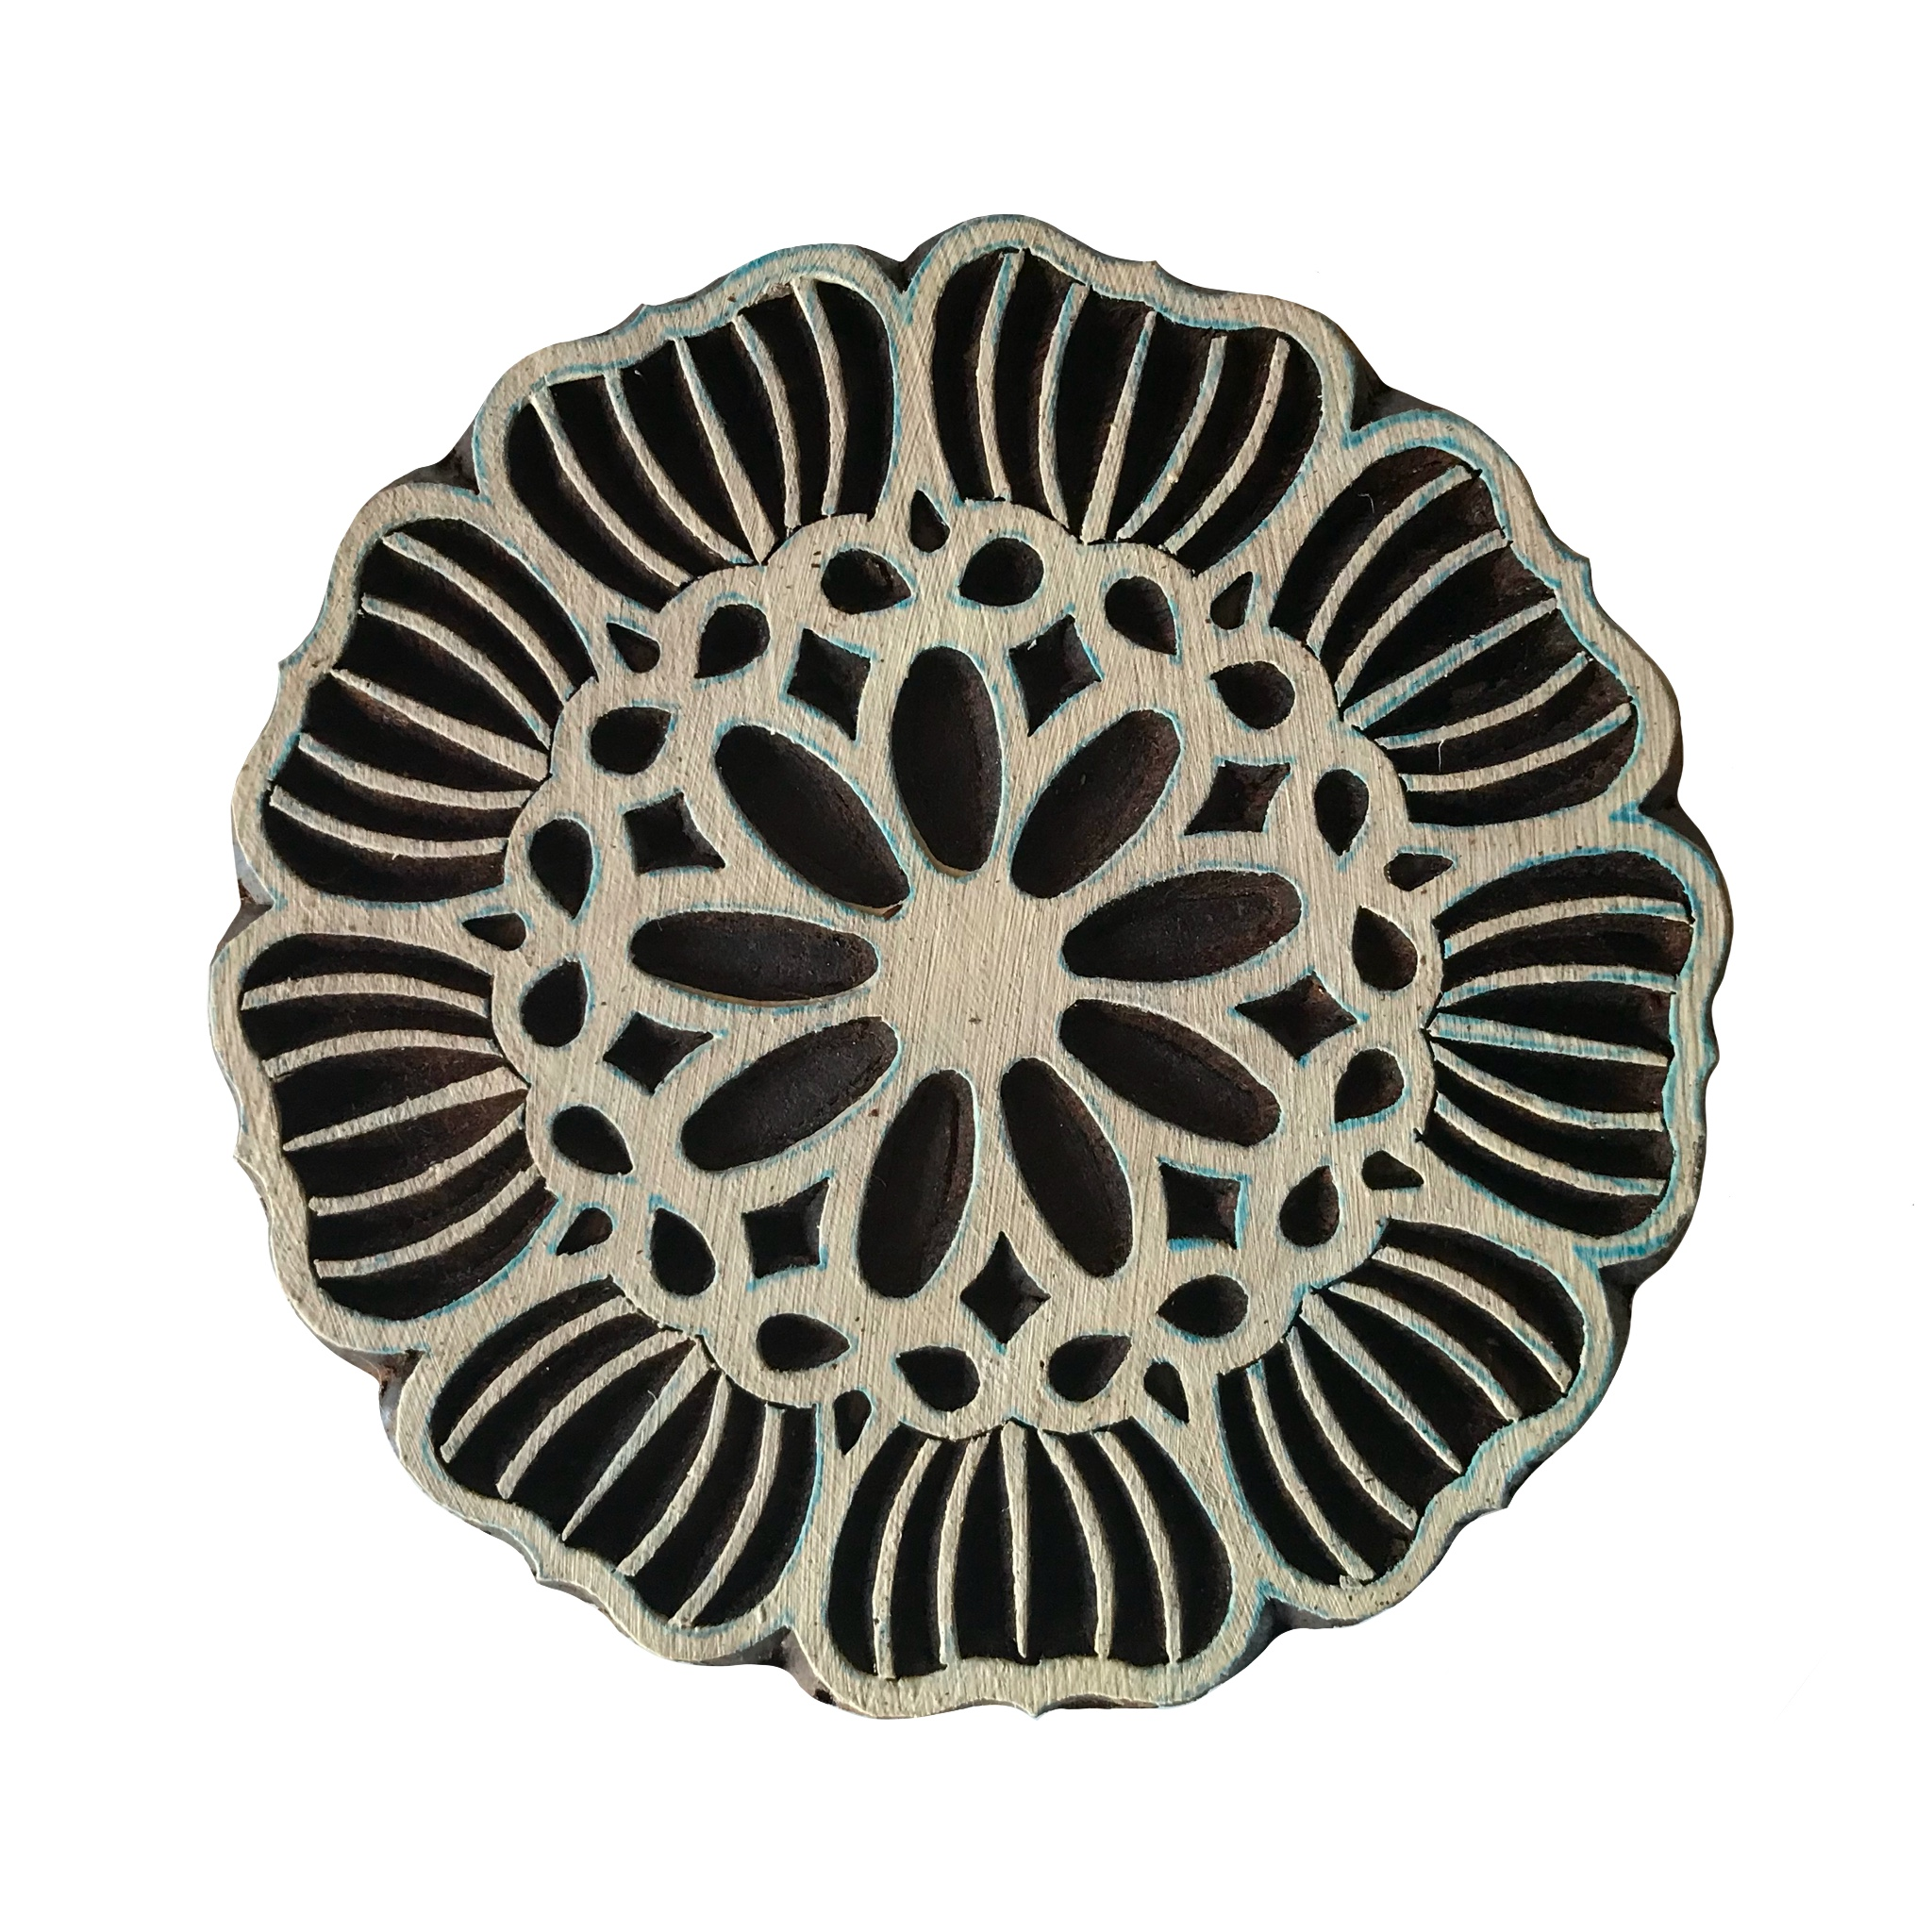 Block Print Stamp Fancy Flower M 176